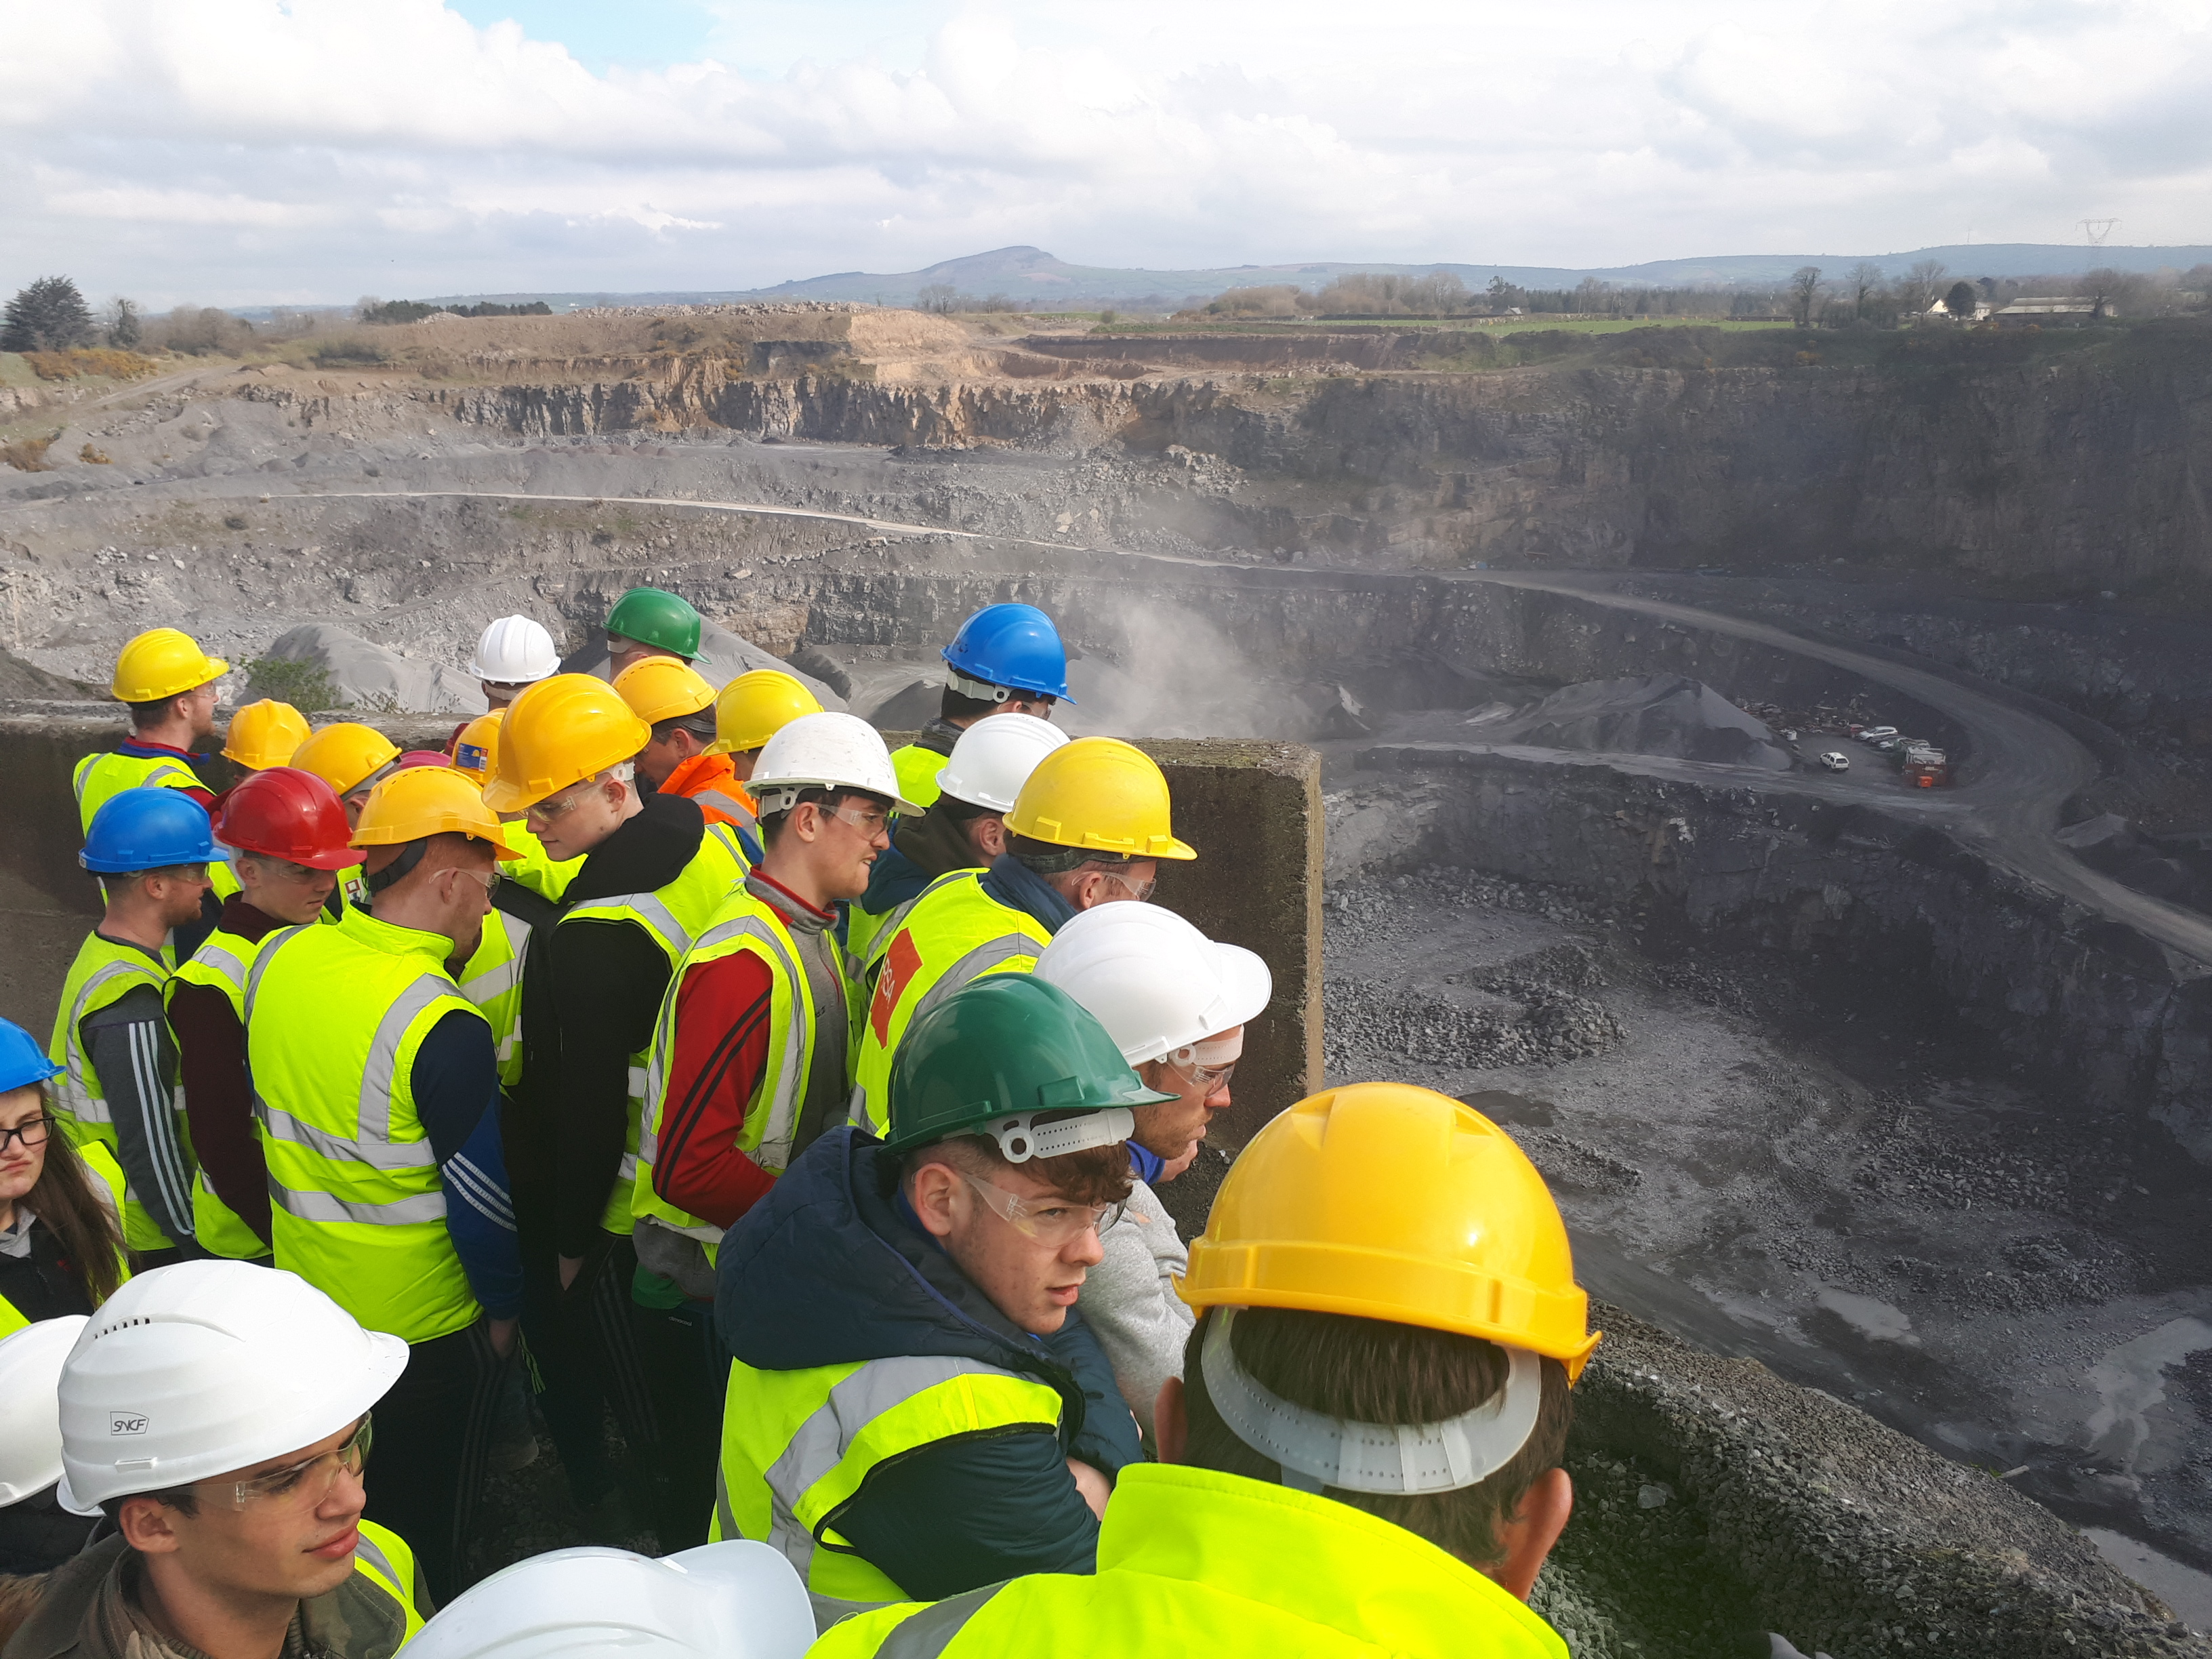 Students from BSc (Hons) in Construction Management Engineering and BSc (Hons) in Quantity Surveying Year 1 visited the CRH Roadstone Kilmacow Quarry